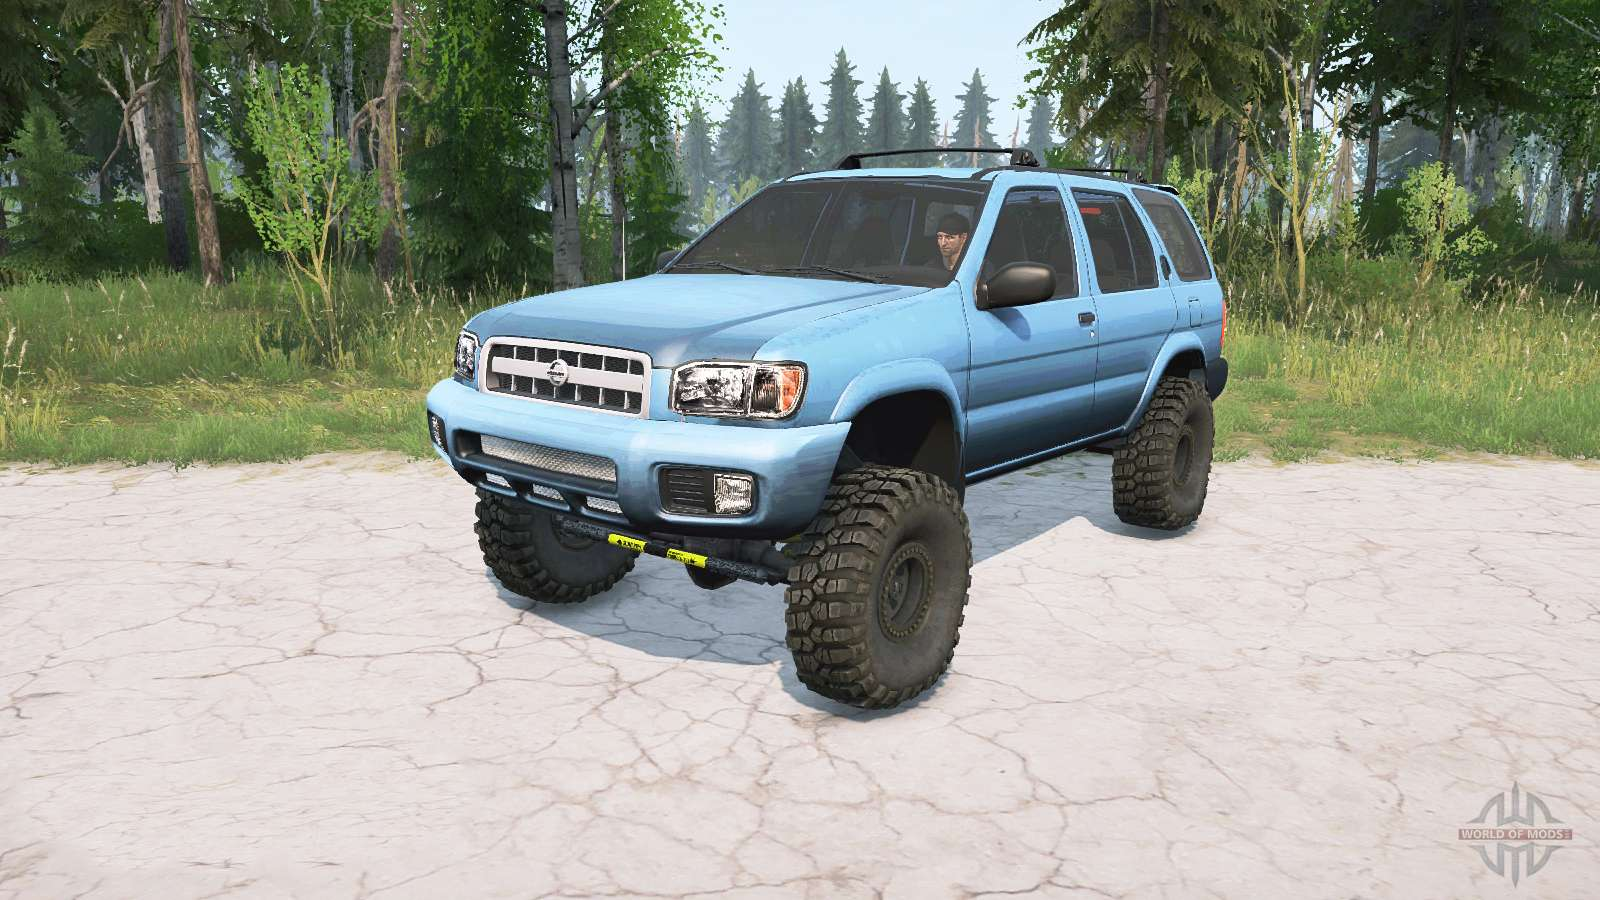 nissan pathfinder r50 2004 lifted for mudrunner nissan pathfinder r50 2004 lifted for